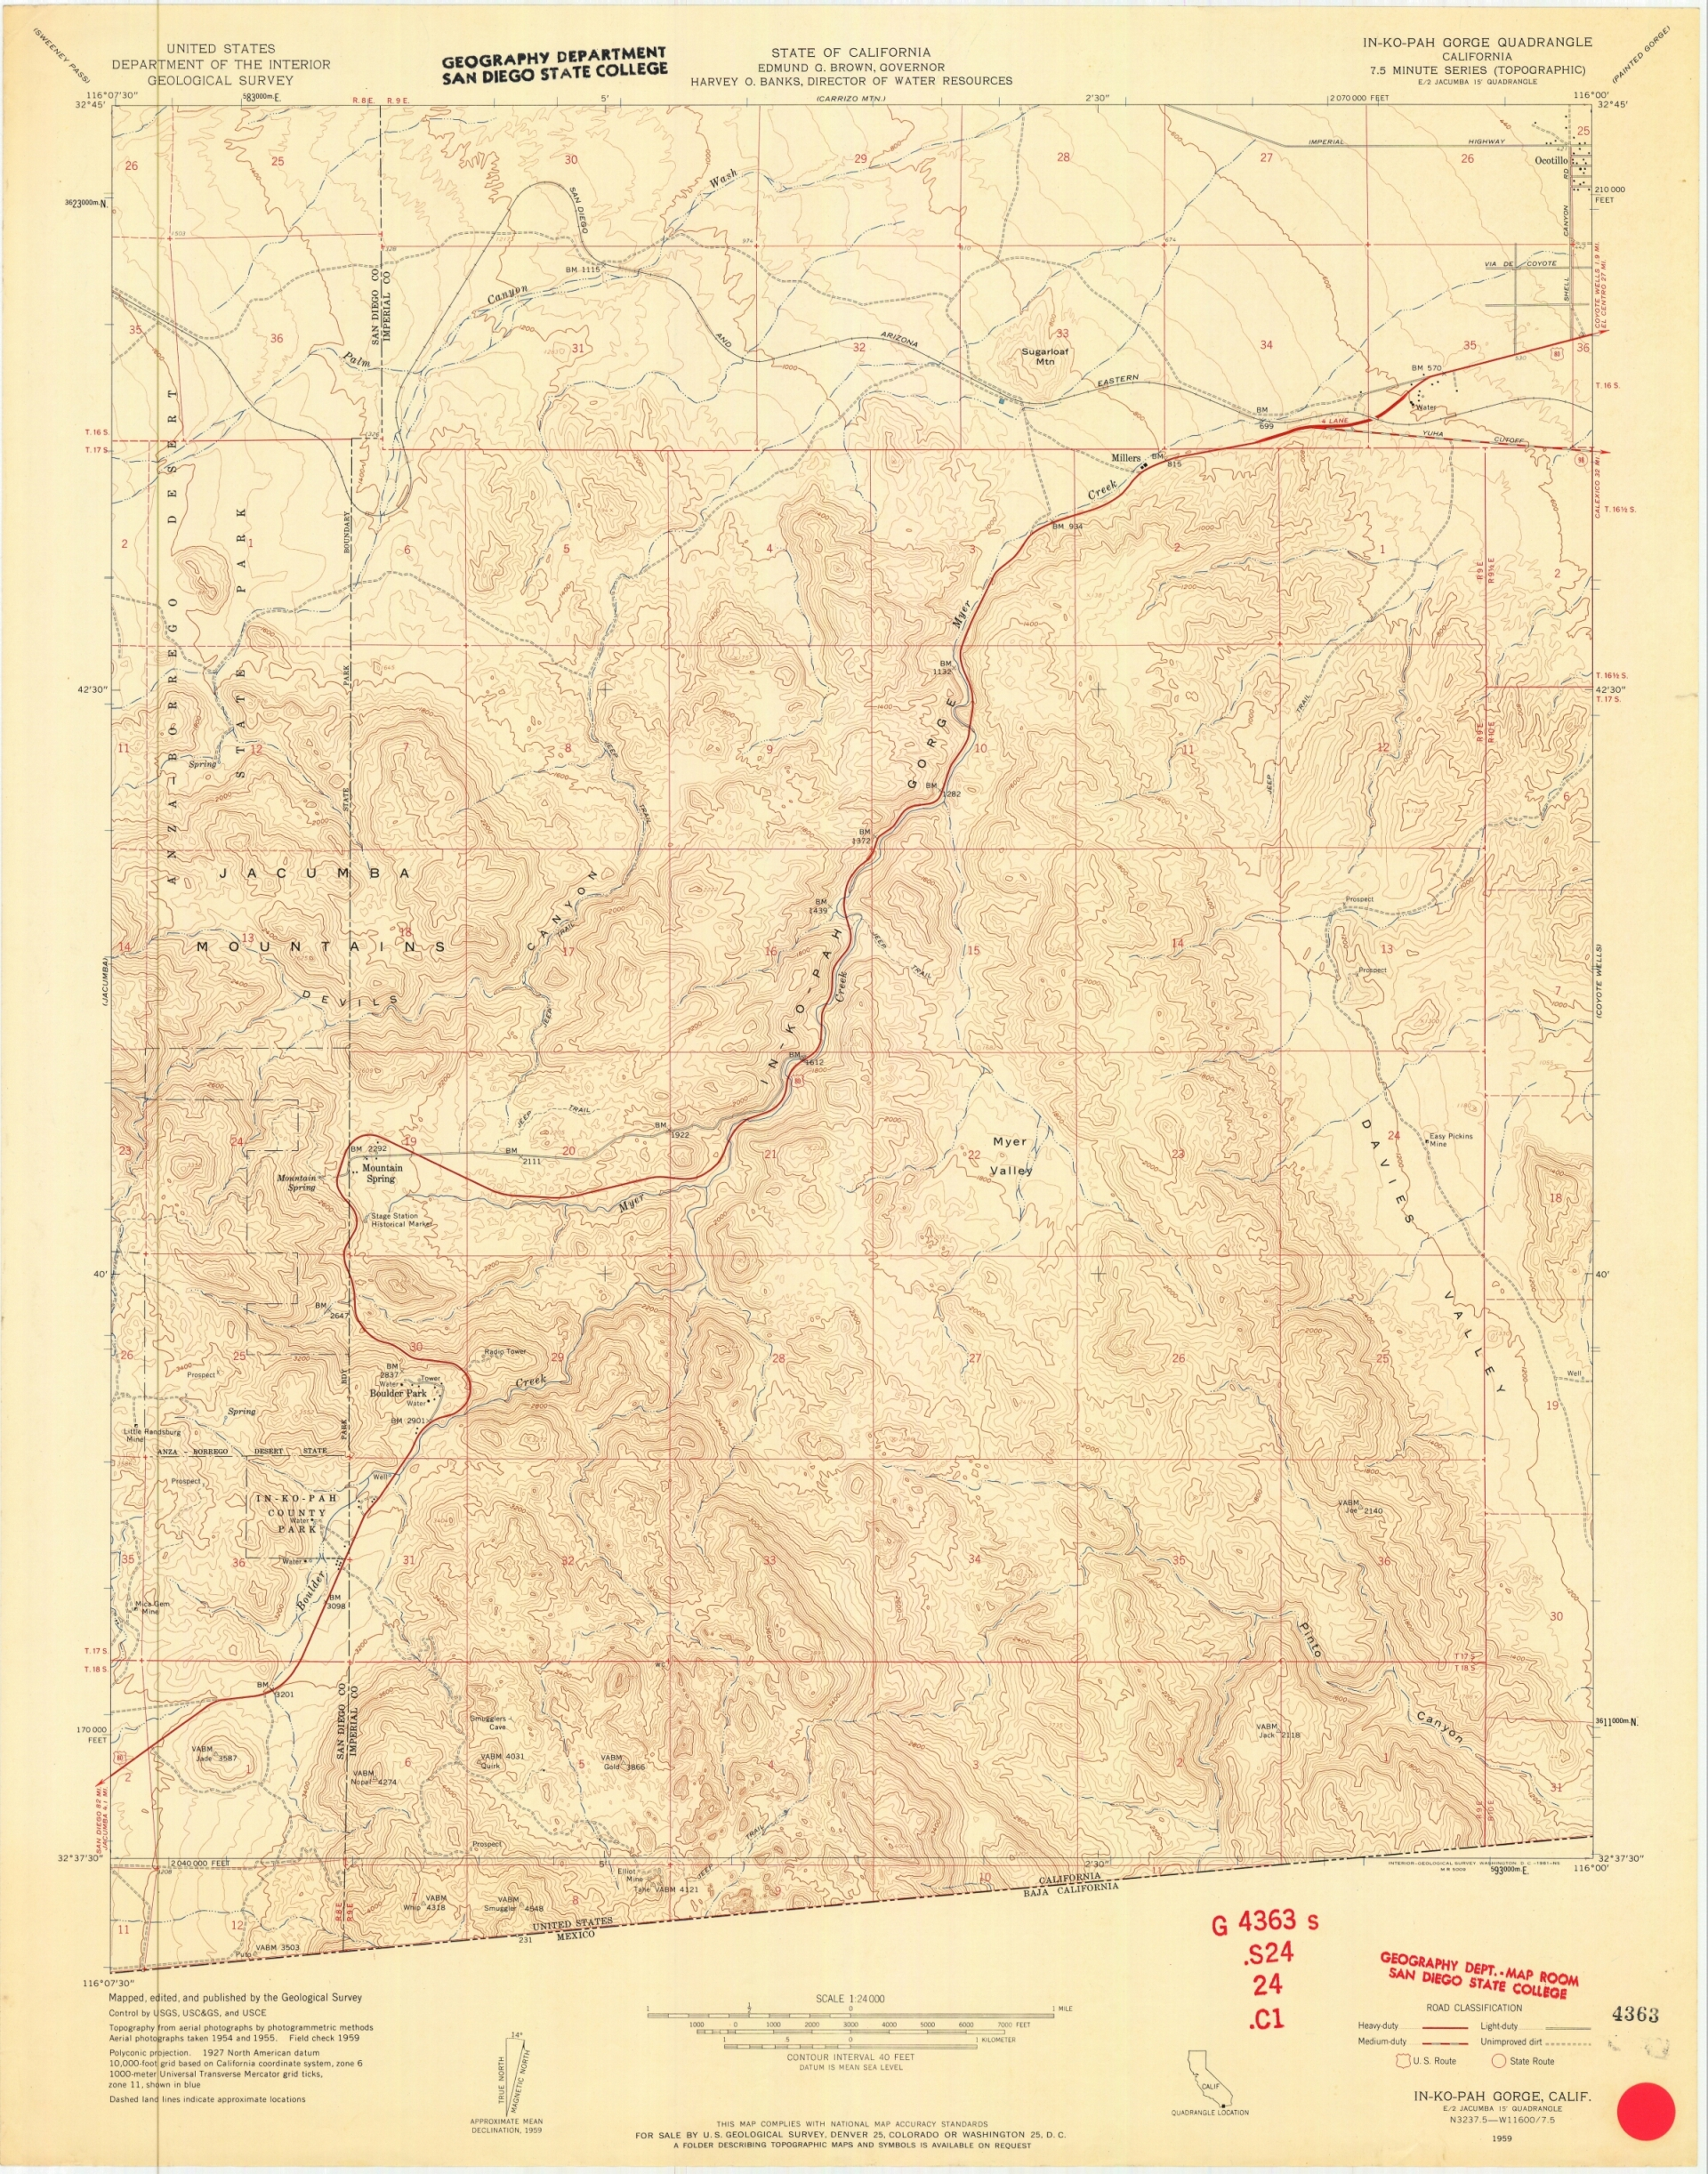 SDAG - Online Historical Topographic Maps, San Diego County